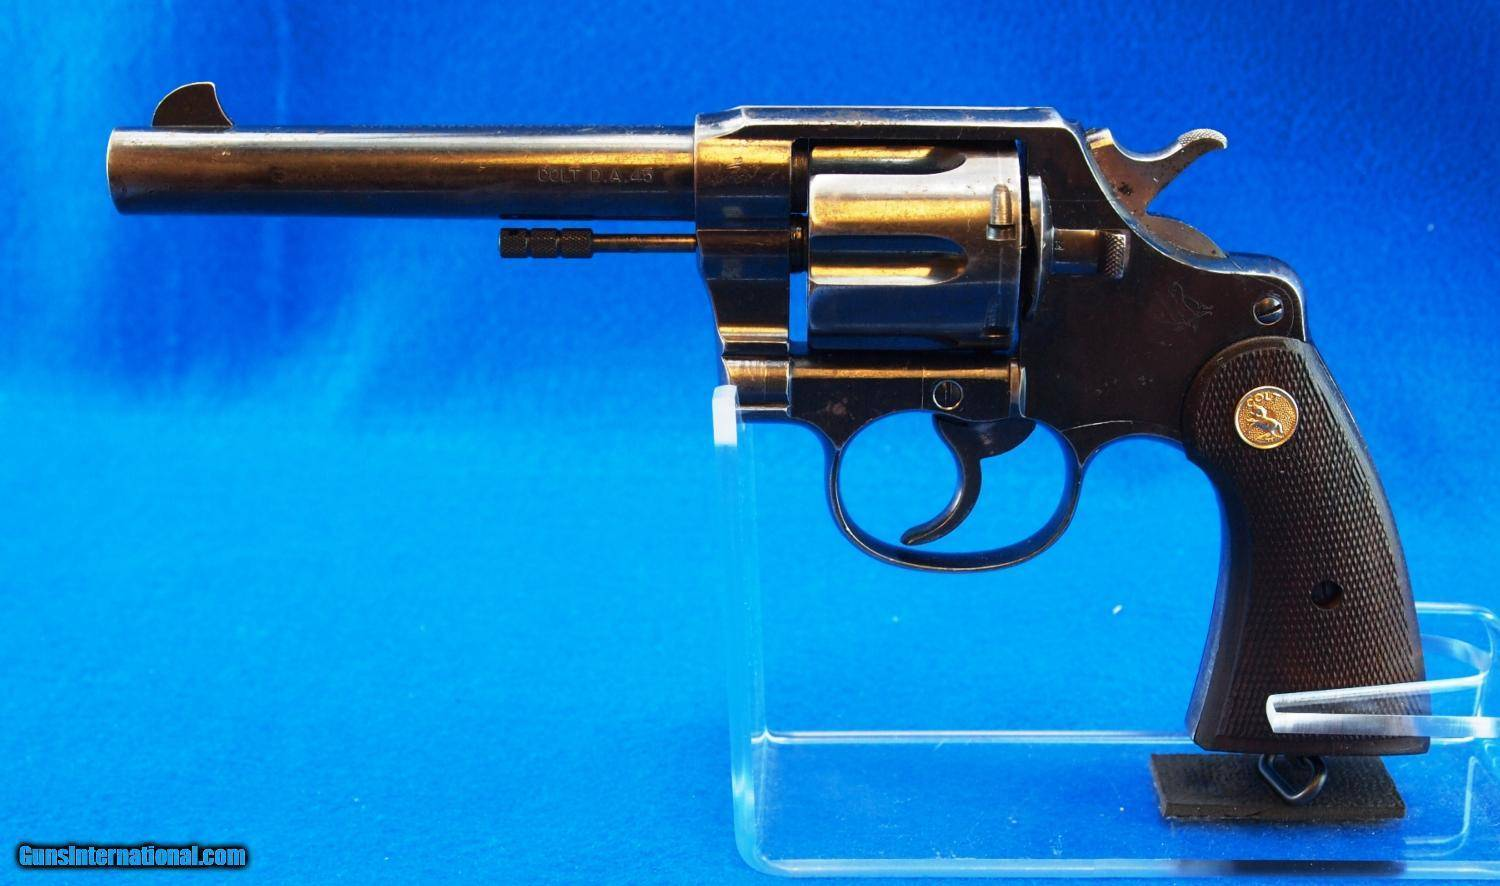 Colt model 1910 — wikipedia republished // wiki 2